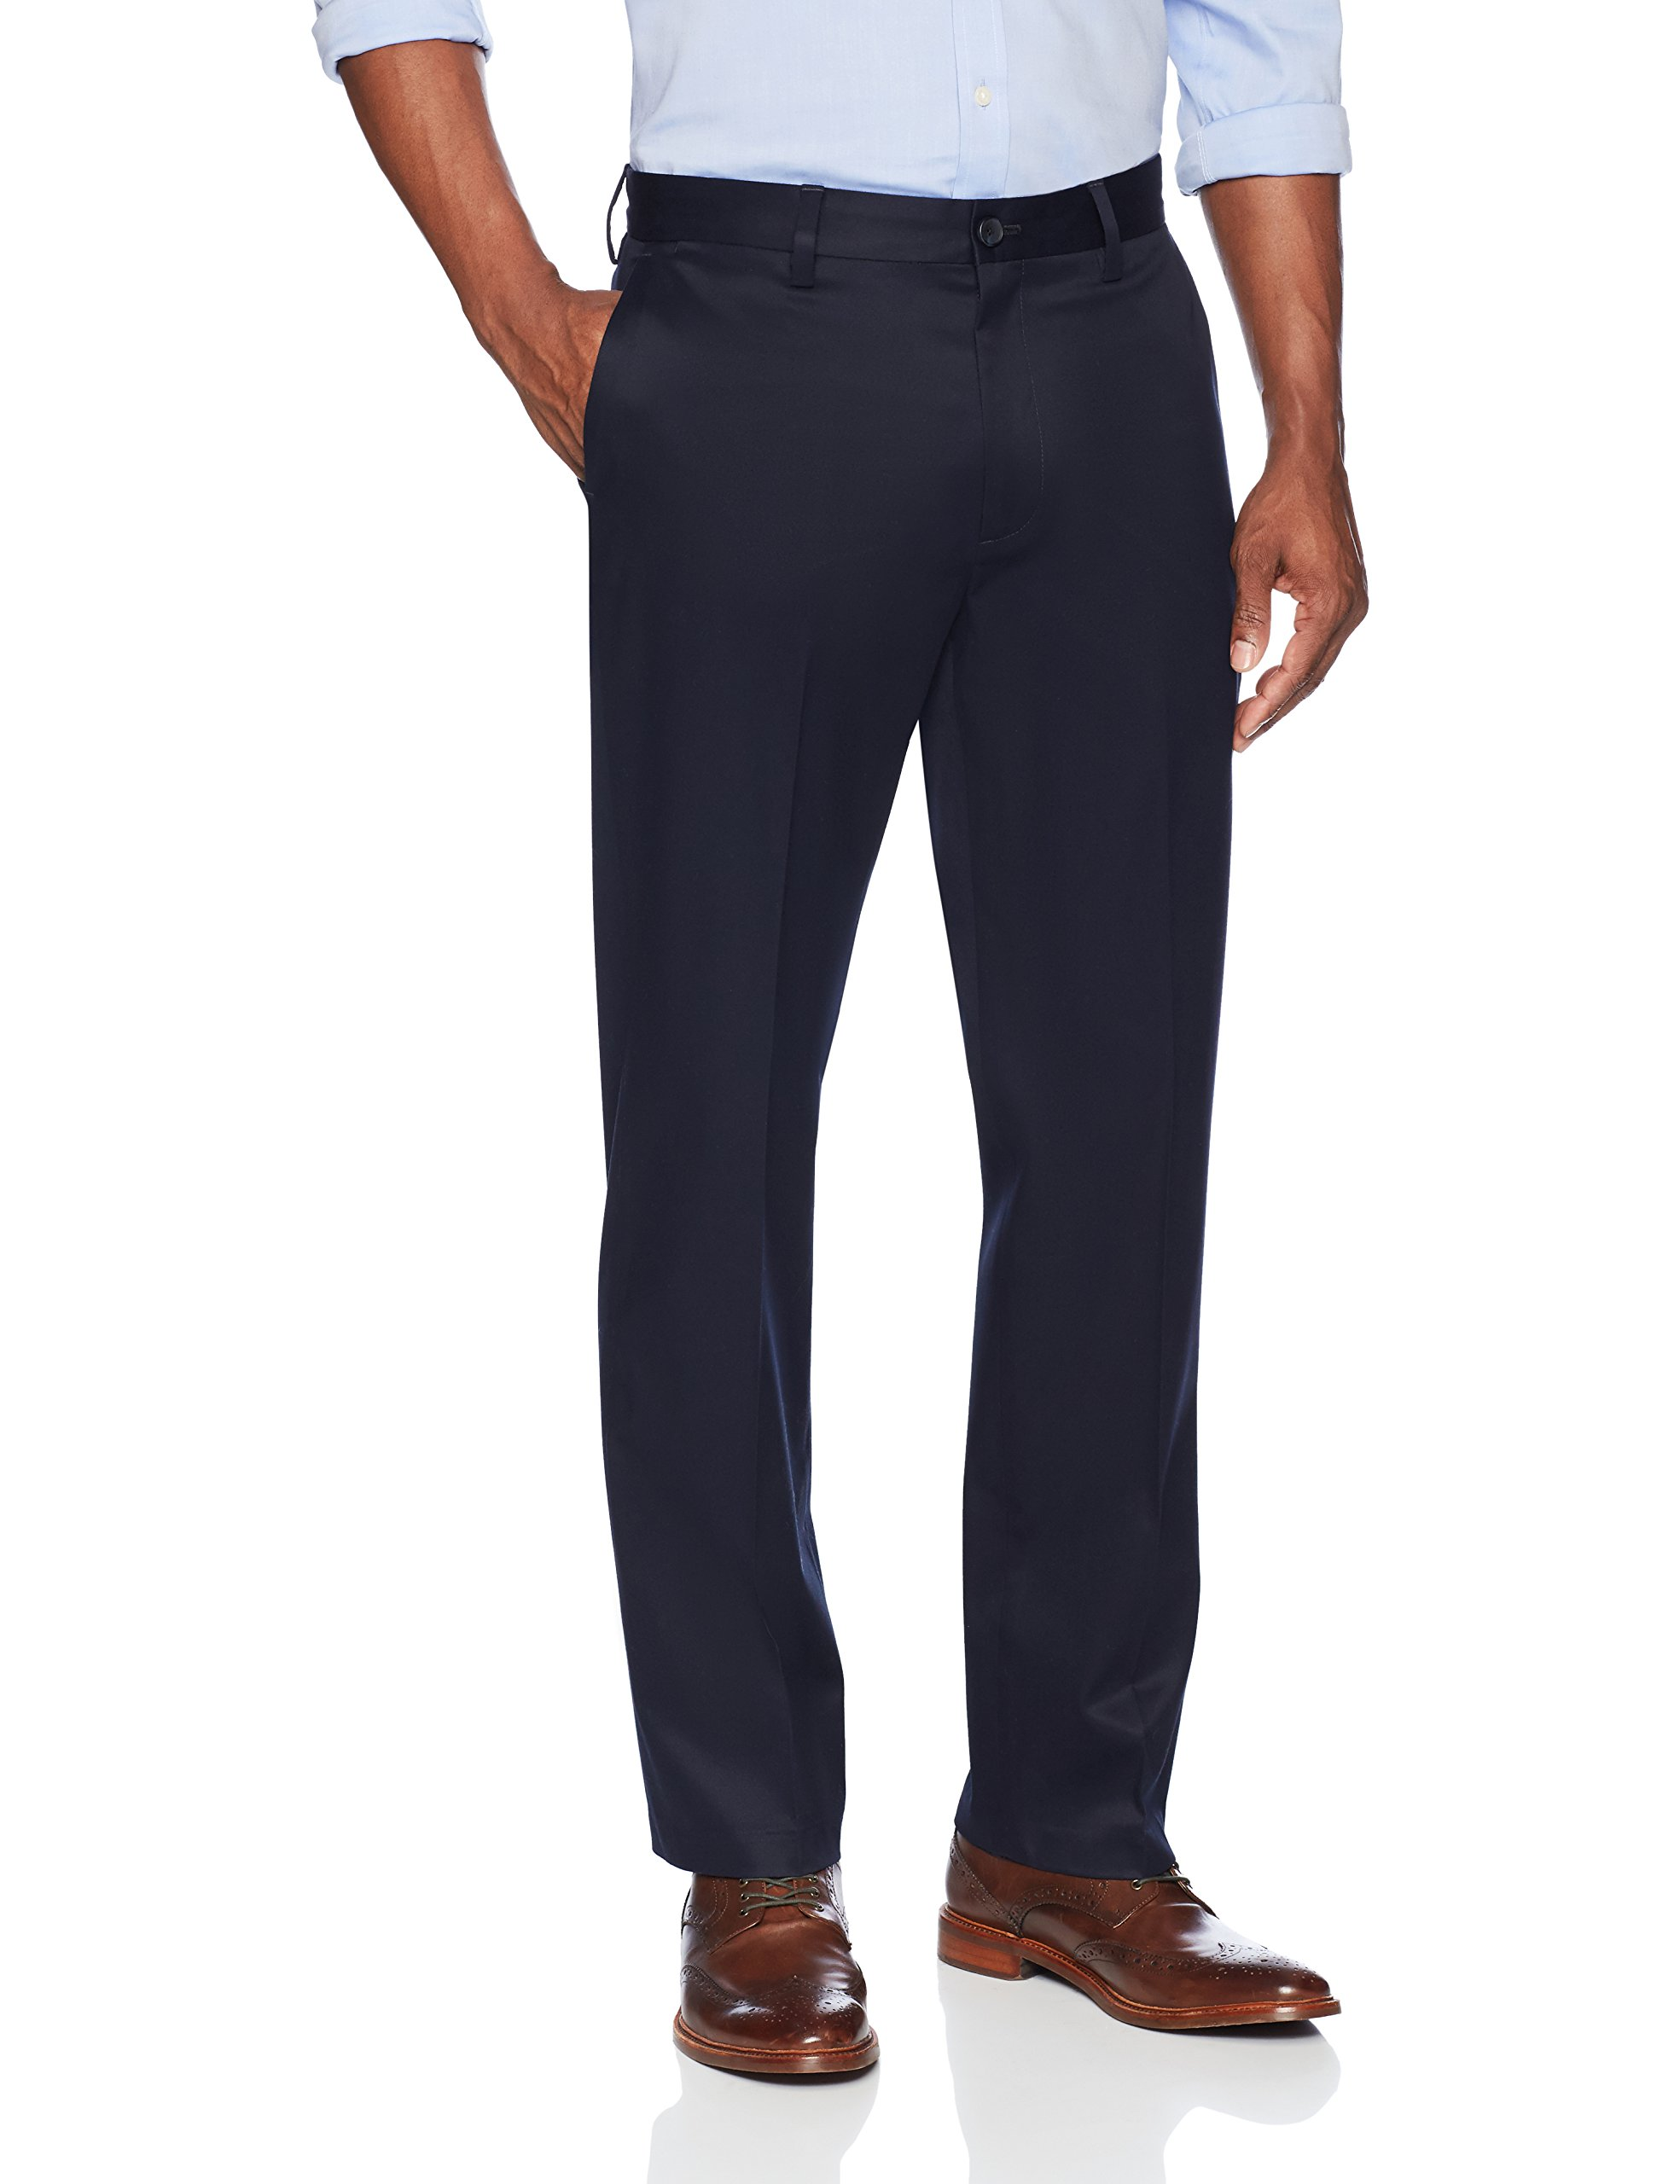 Buttoned Down Men's Relaxed Fit Flat Front Stretch Non-Iron Dress Chino Pant, Navy, 38W x 32L